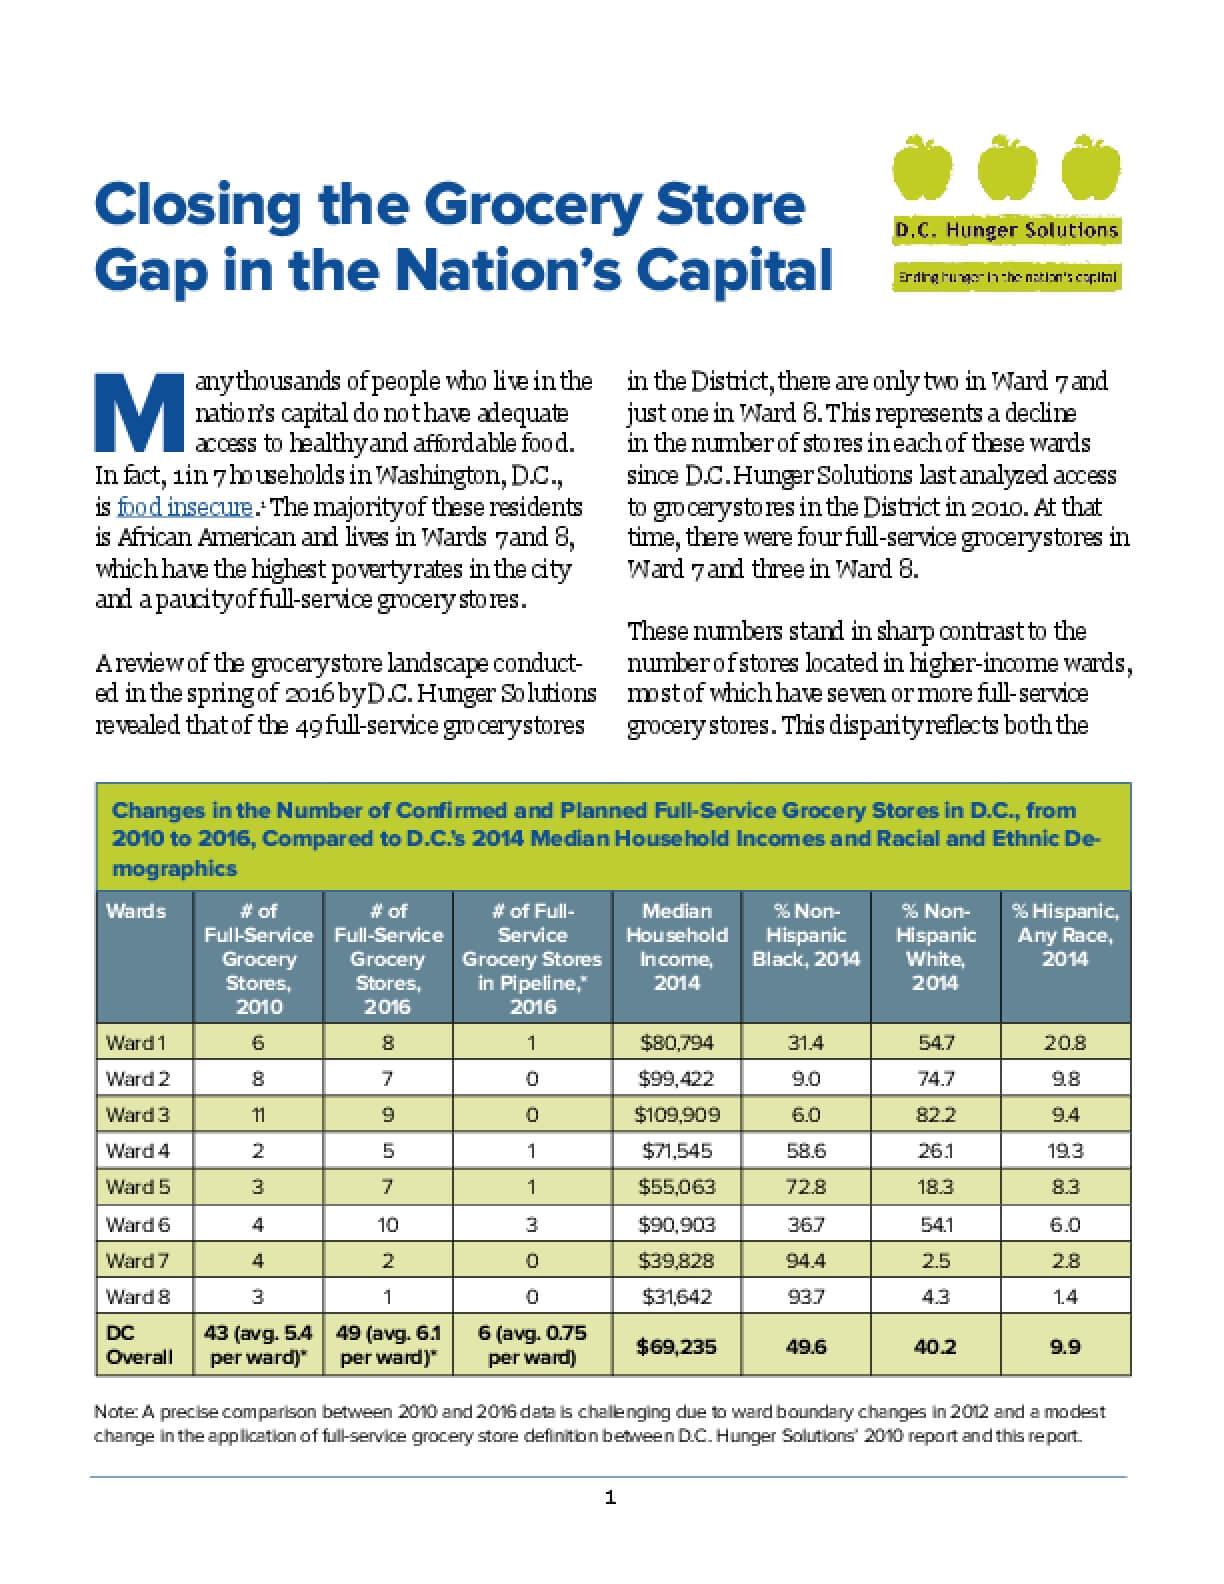 Closing the Grocery Store Gap in the Nation's Capital